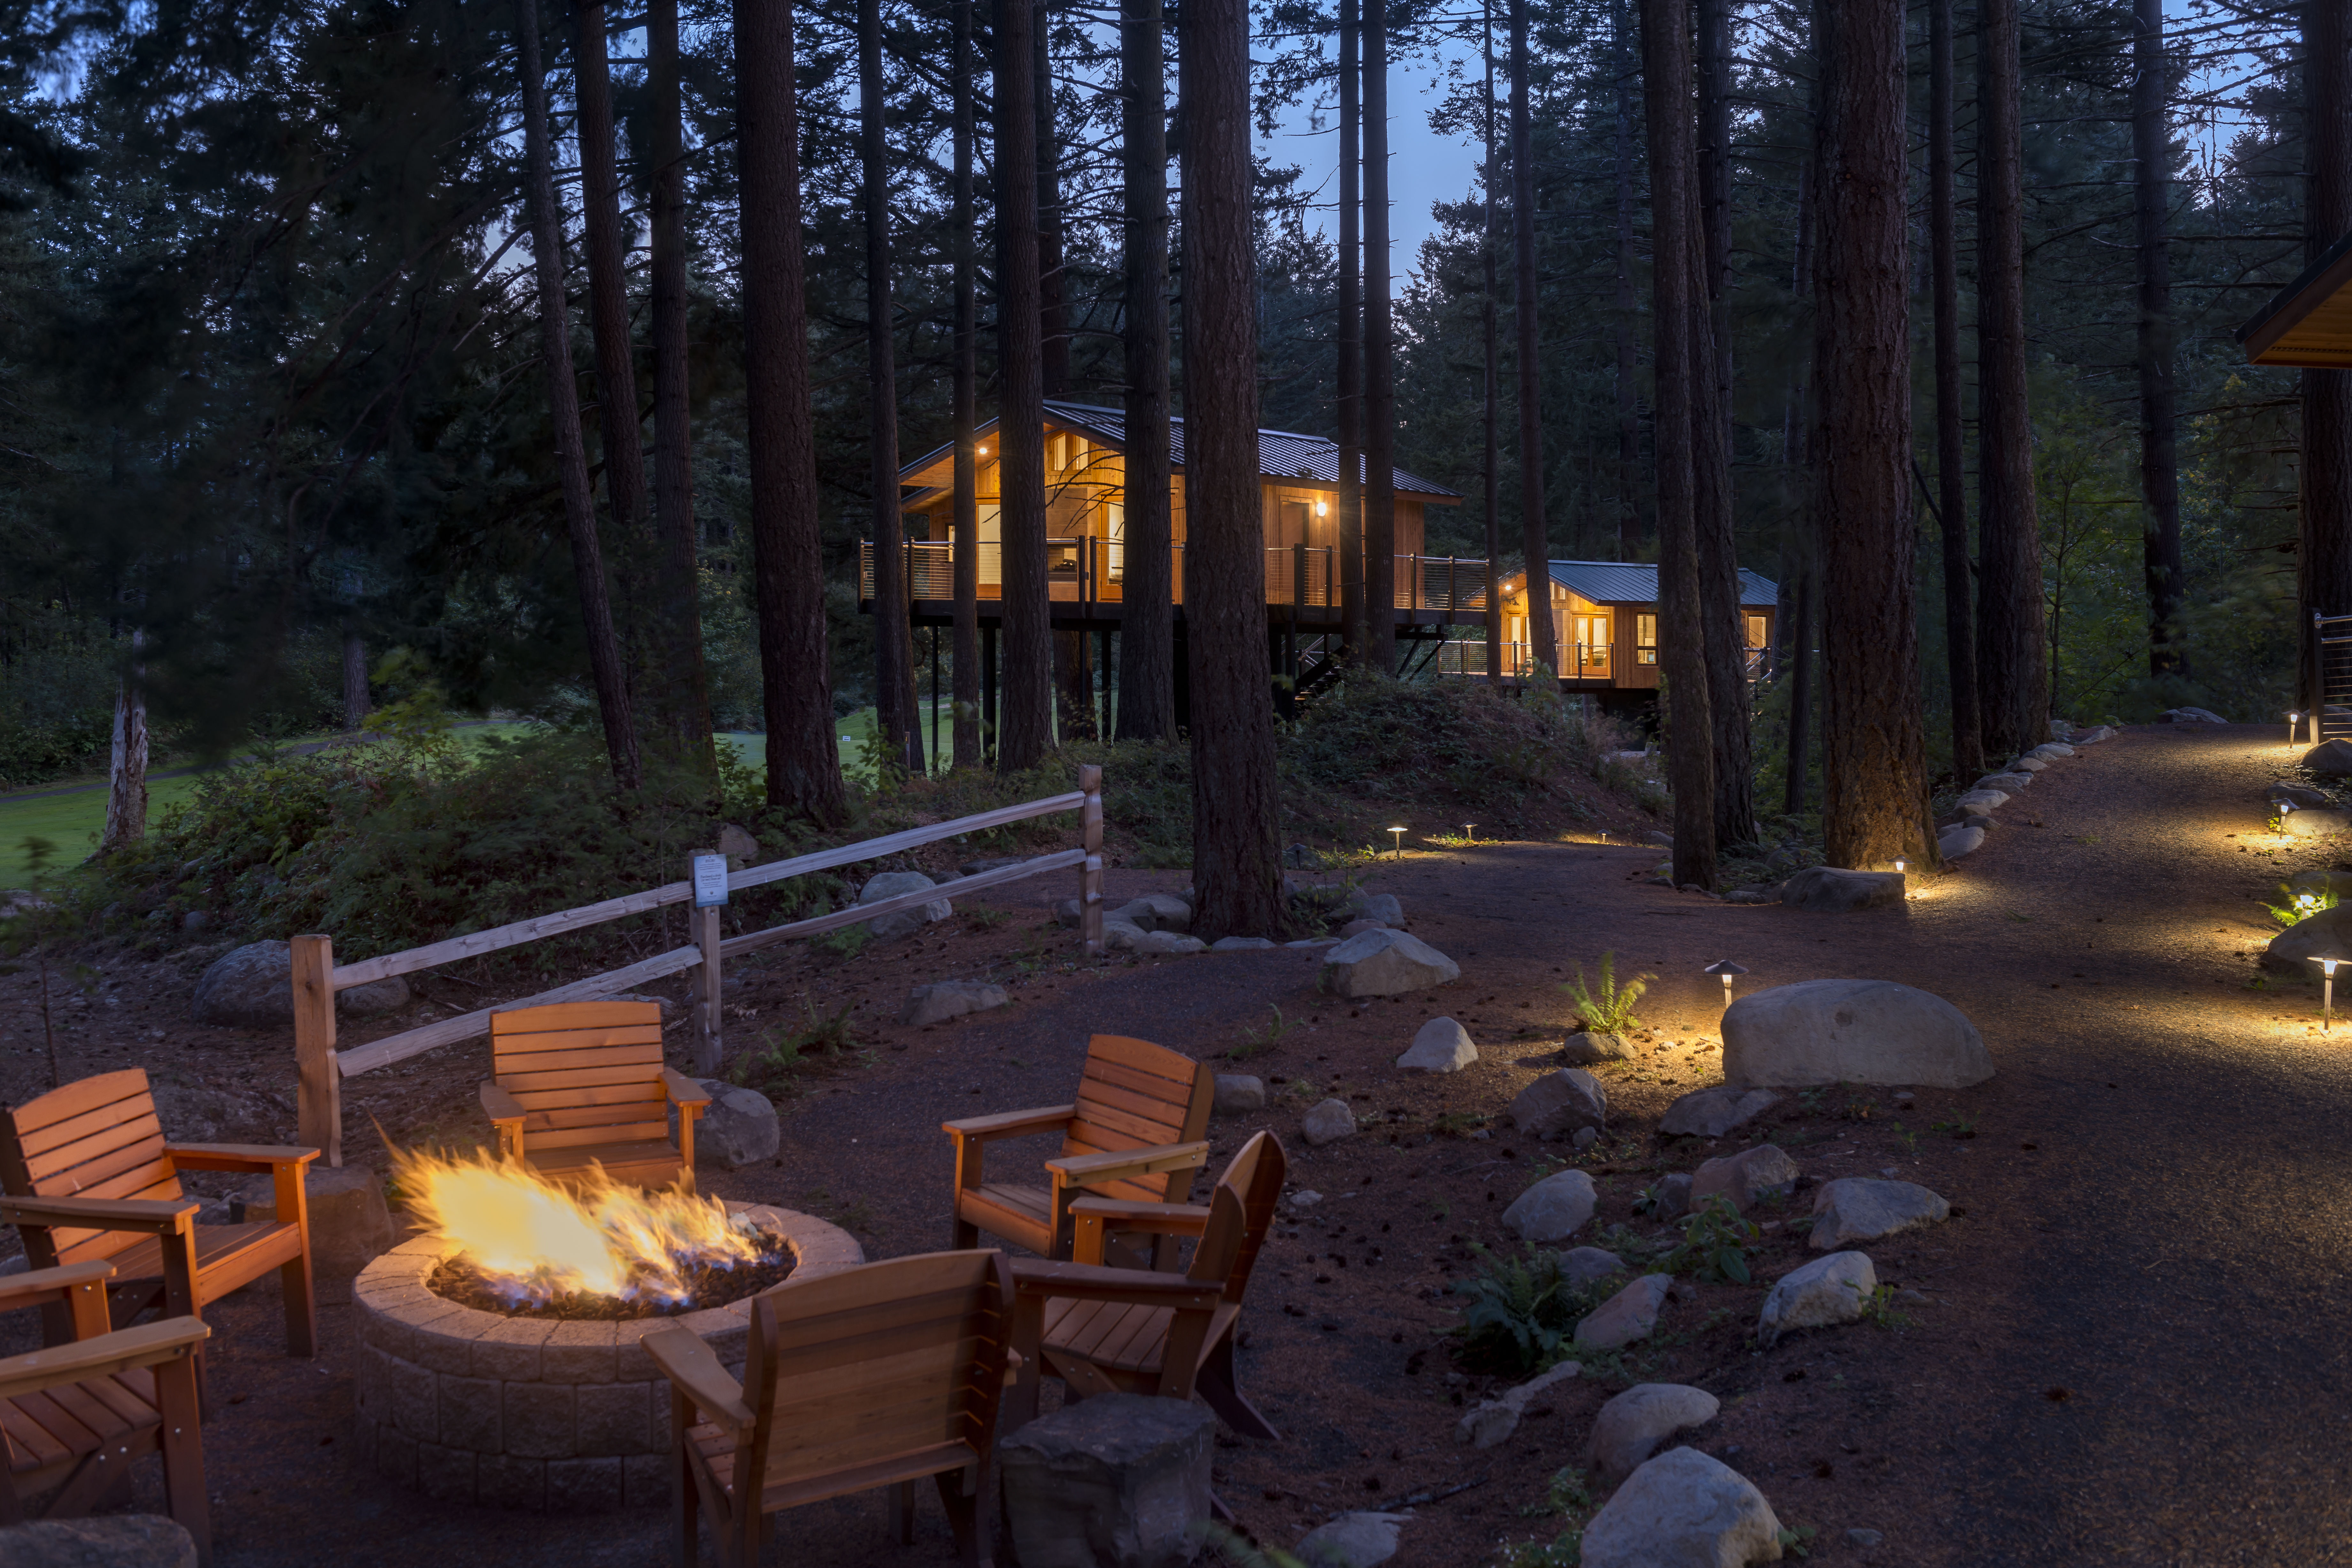 New   skamania lodge accommodations   tree house with firepit and pathway xegzpw